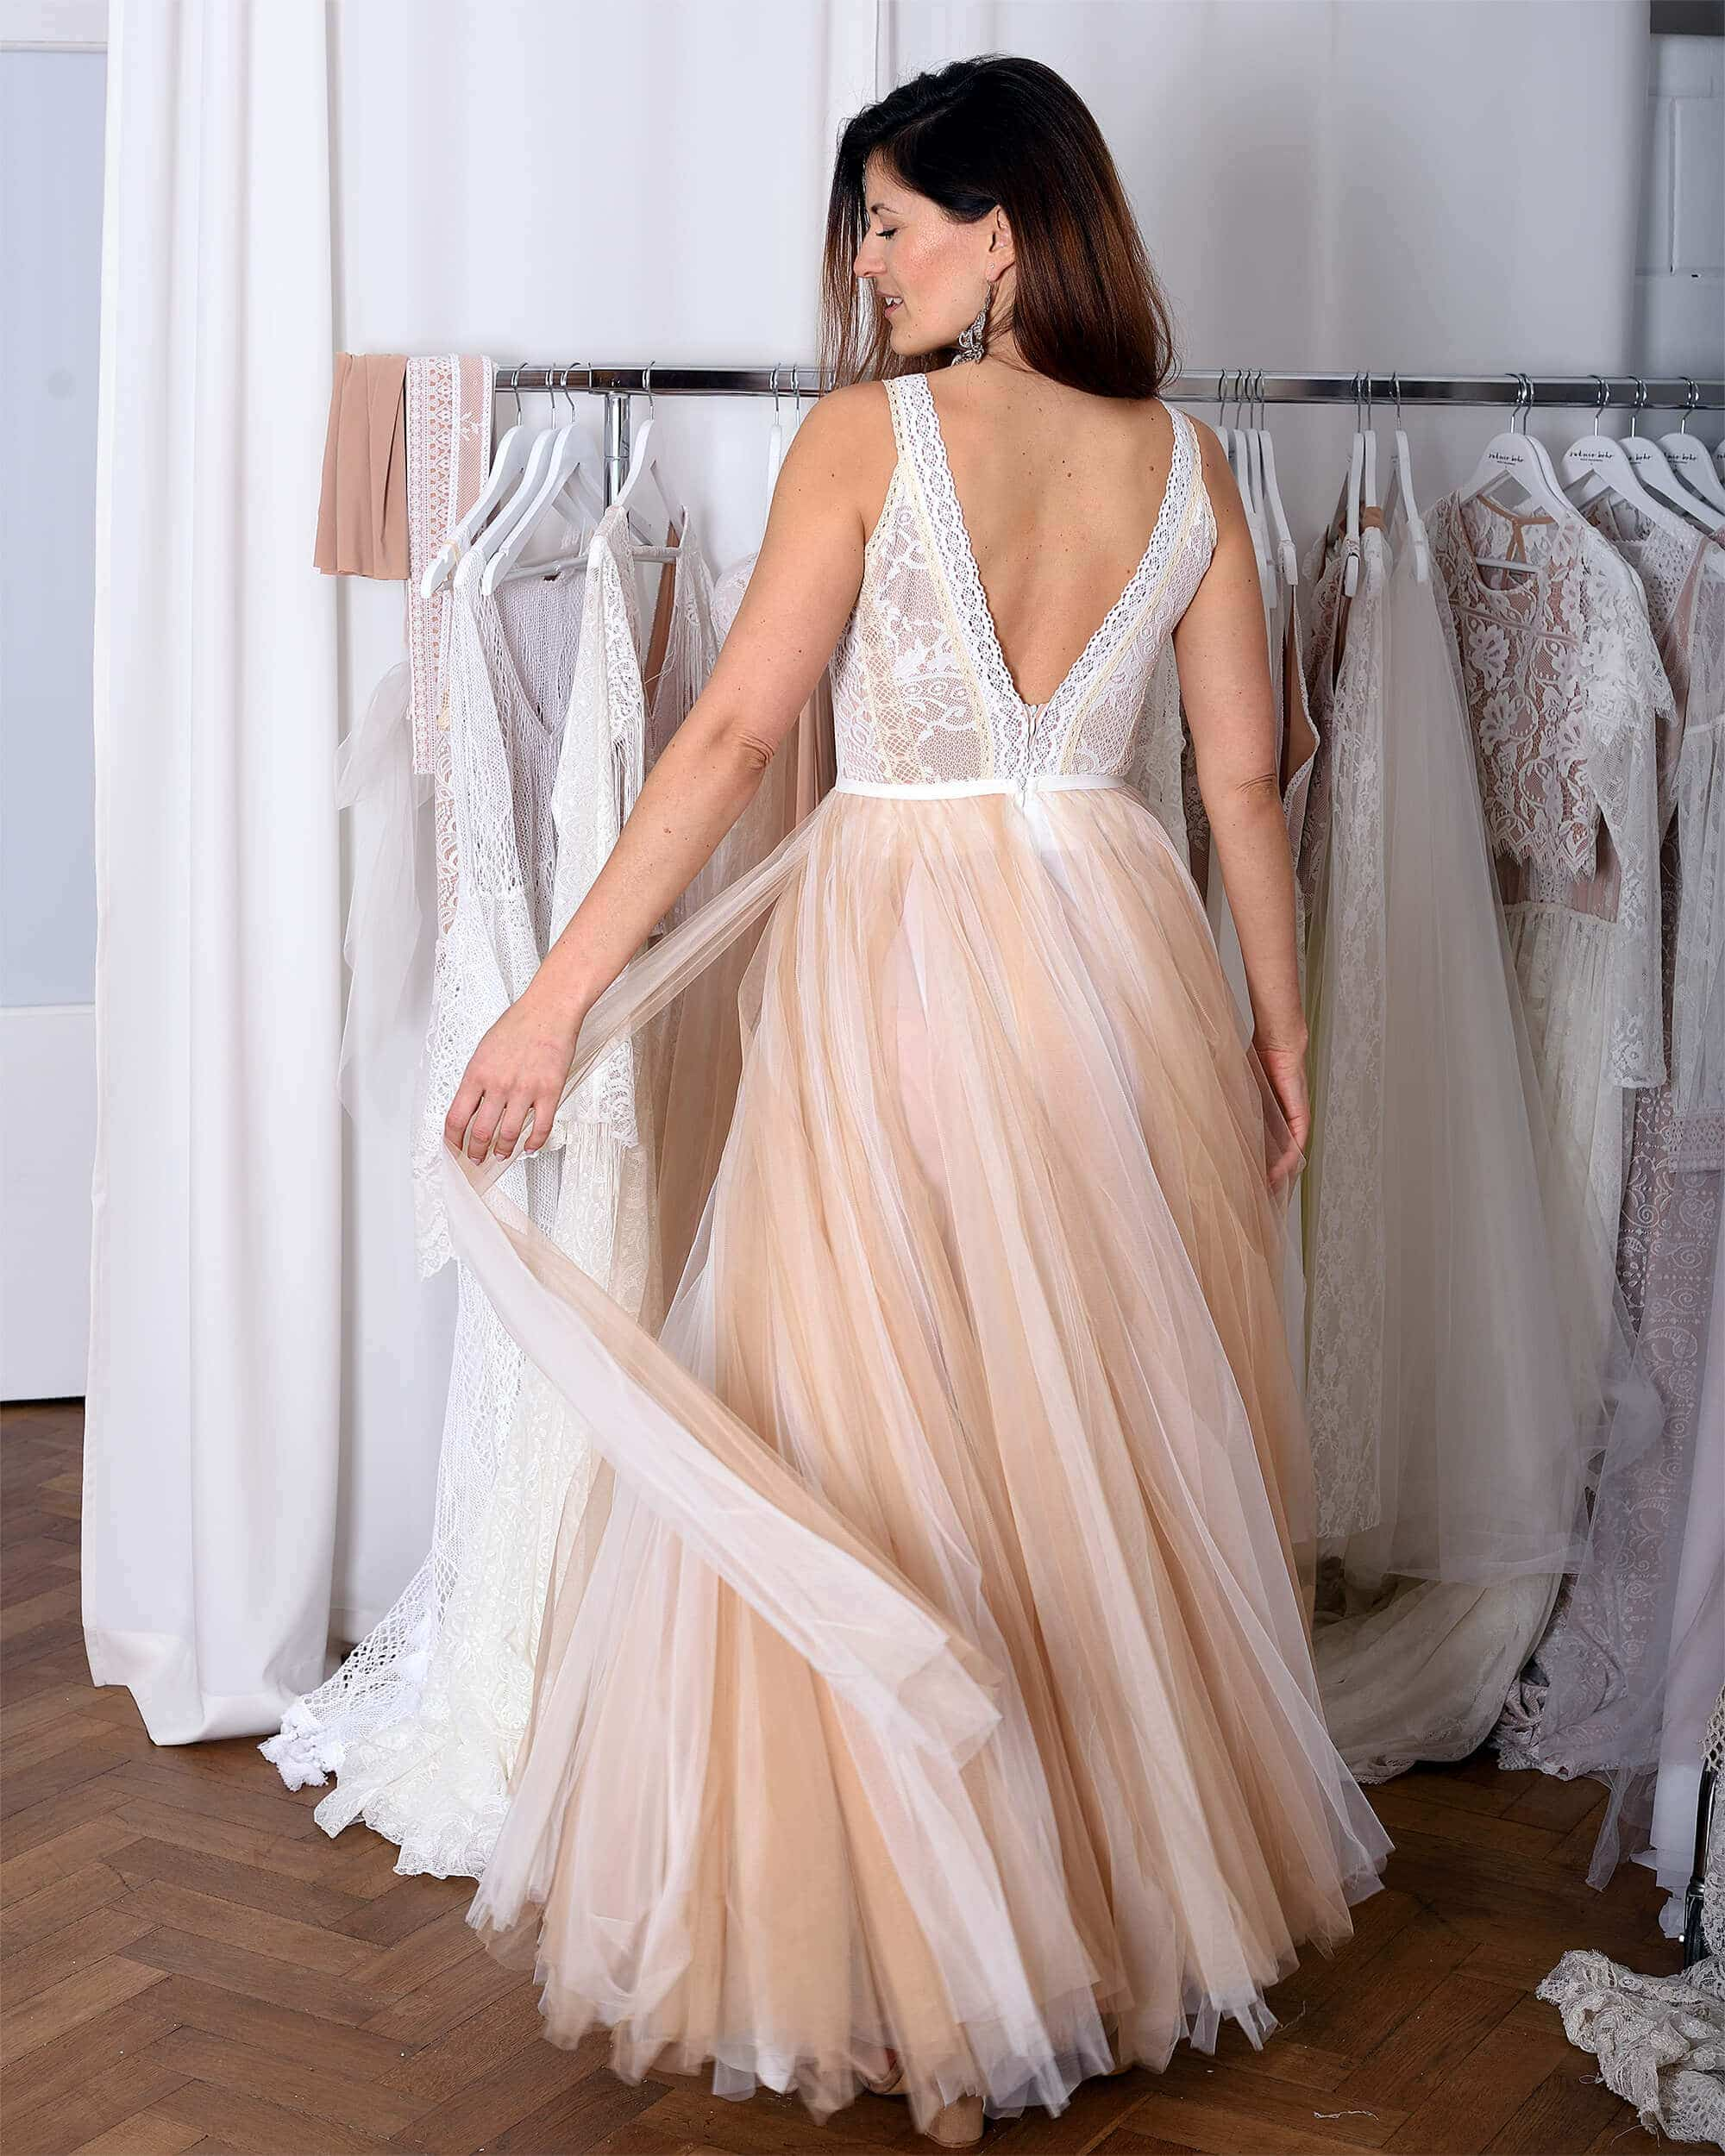 Wedding dress 13 from Porto collection. See beautiful wedding dresses